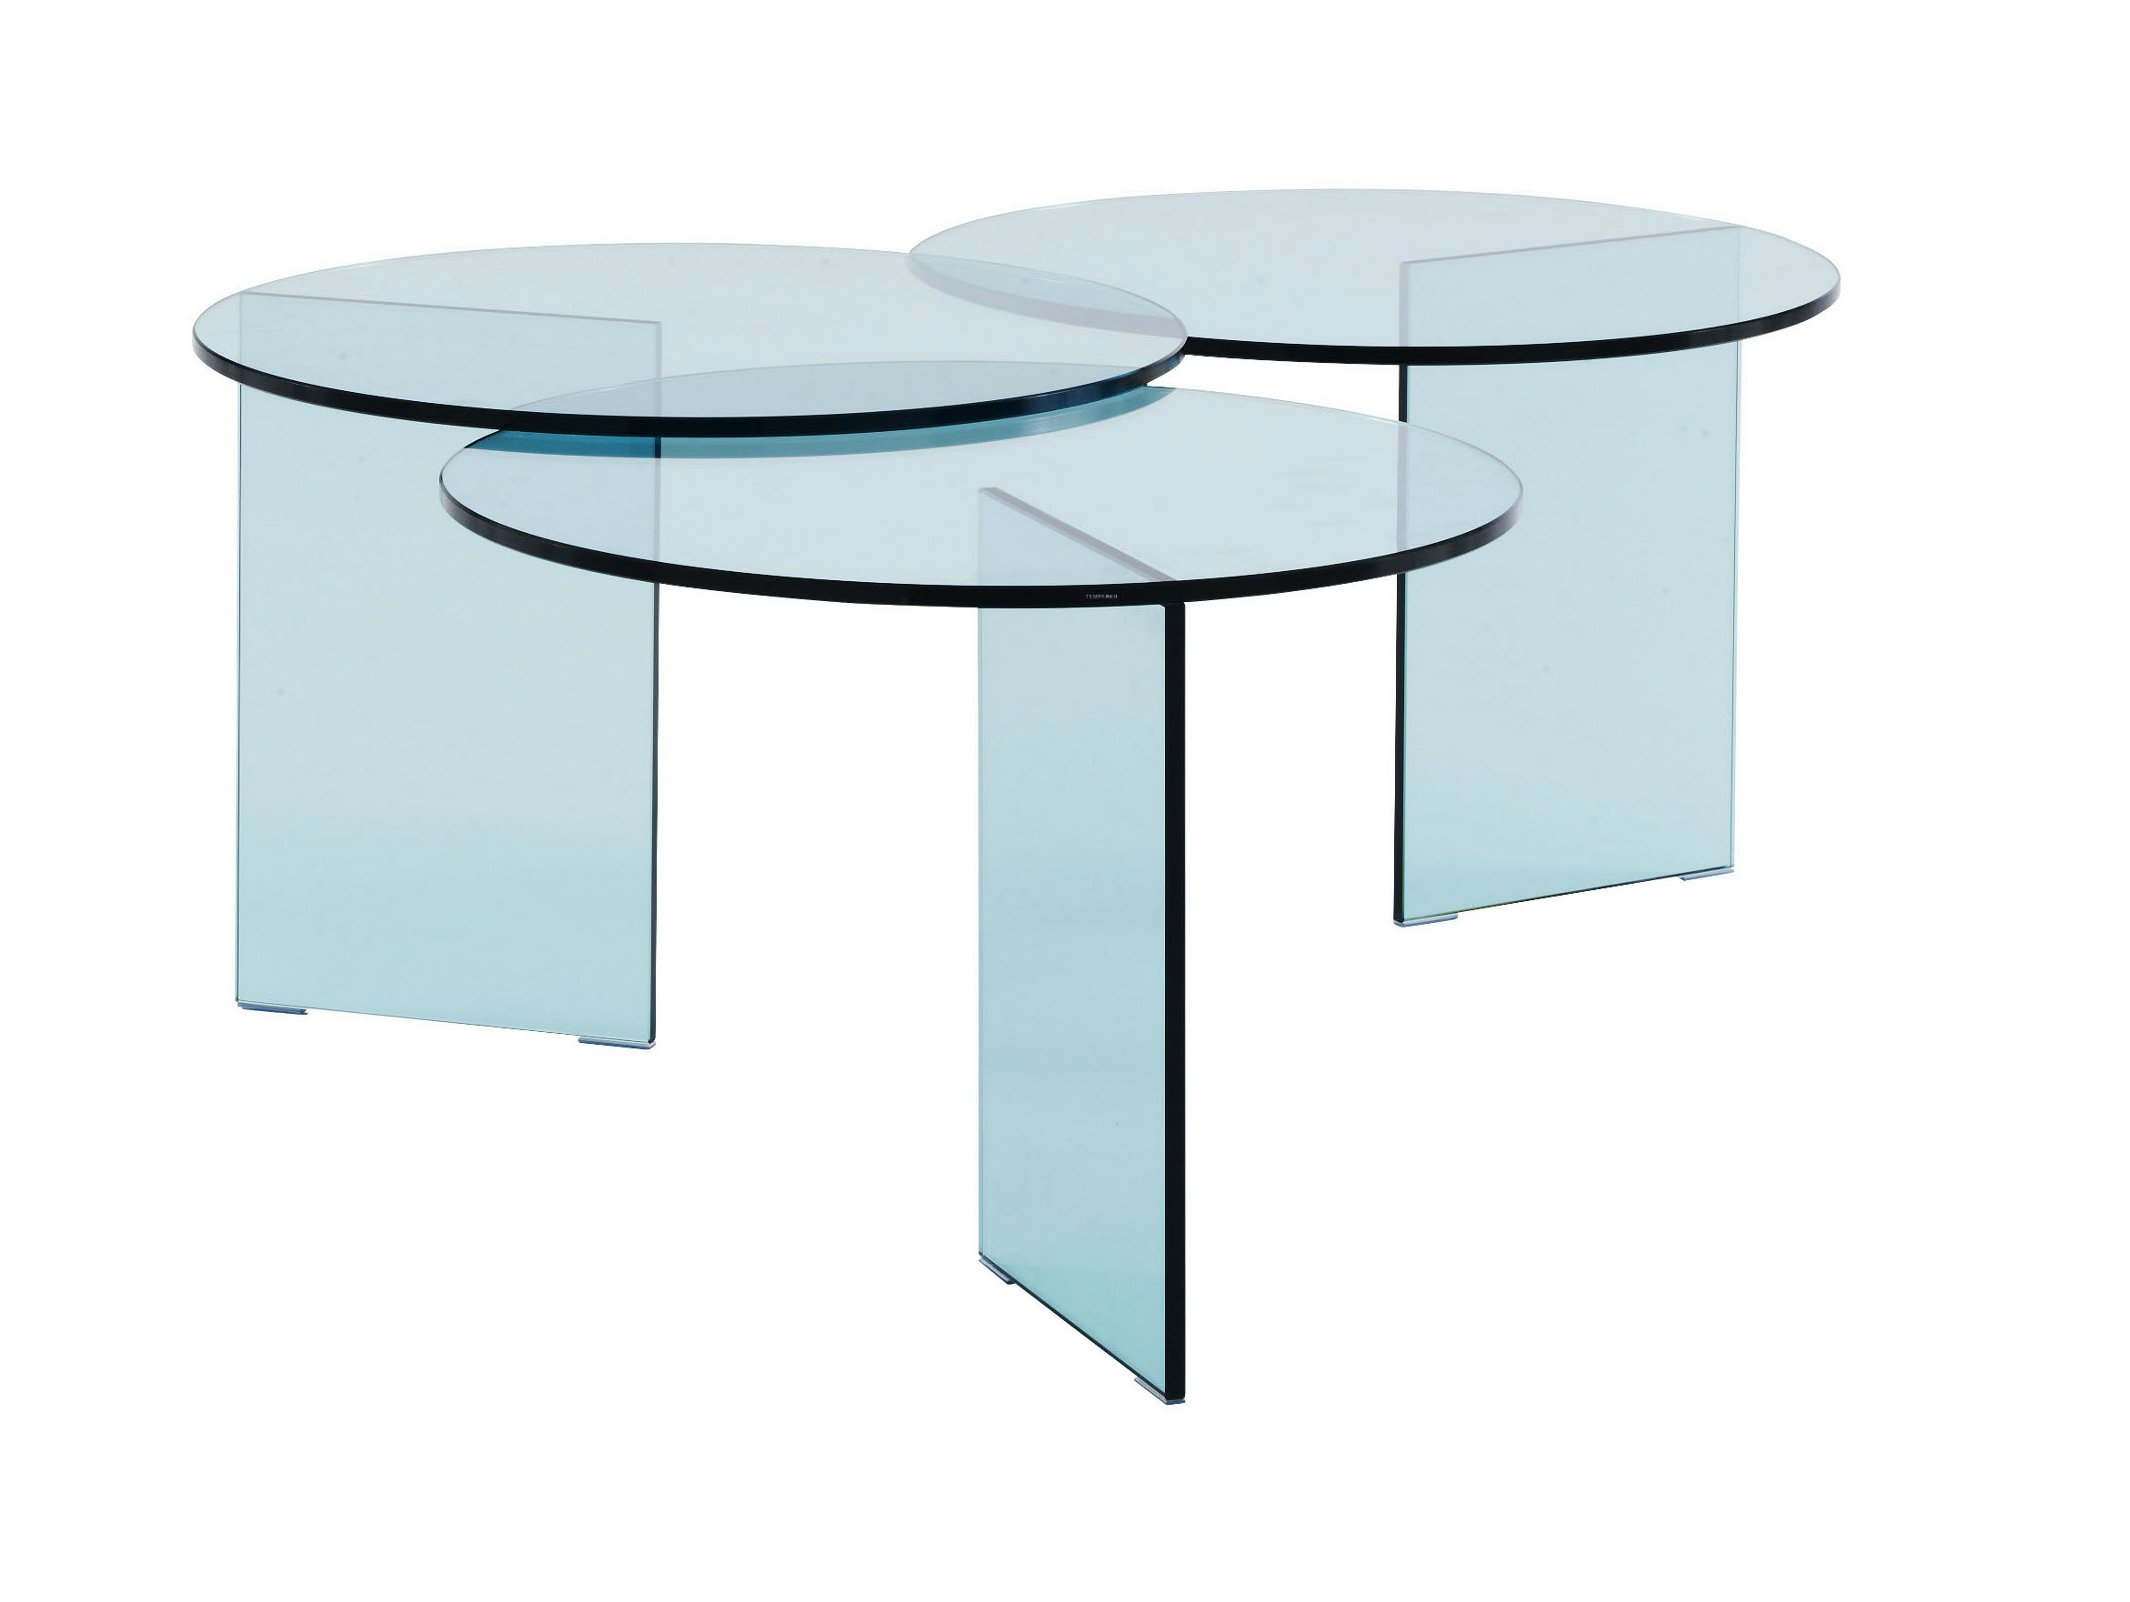 table basse ronde en verre tremp aoyama by roset italia. Black Bedroom Furniture Sets. Home Design Ideas